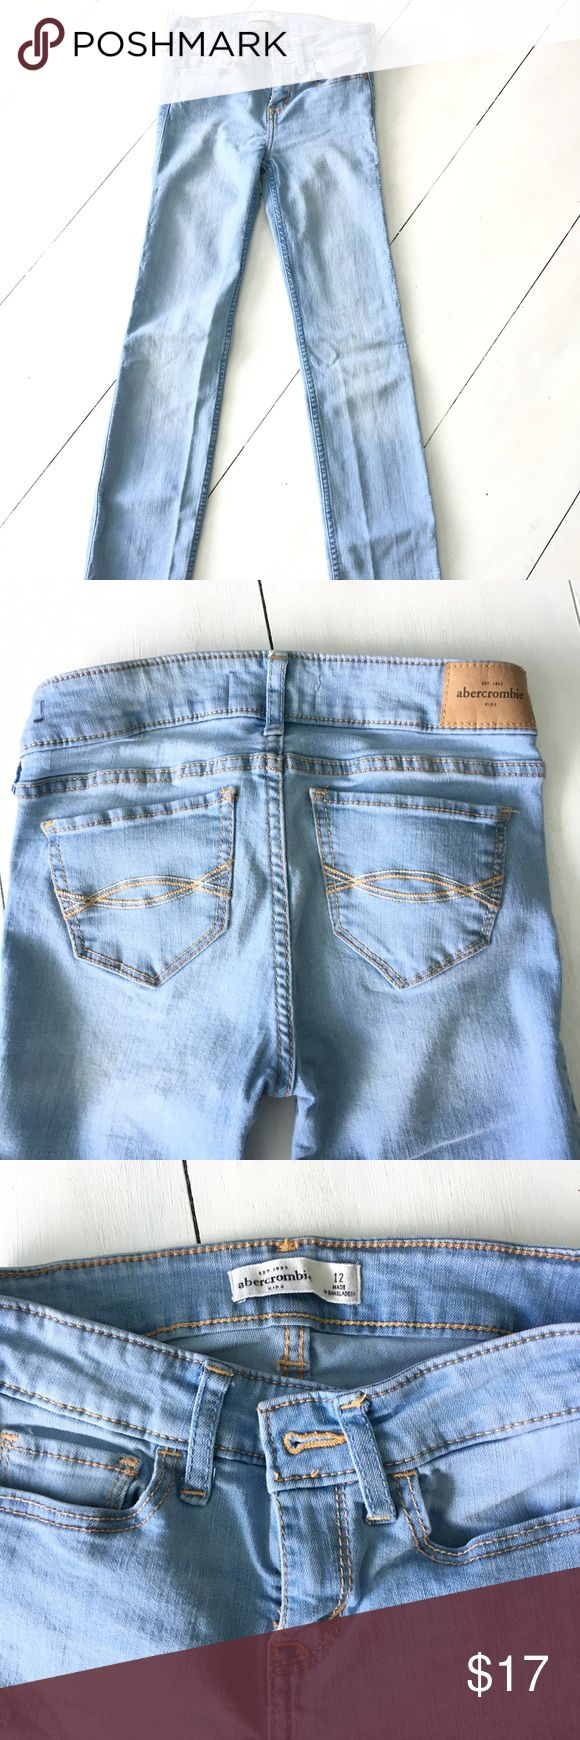 Abercrombie Girls sz 12 skinny jeans EUC Super cute Abercrombie Girls size 12 jeans! EUC in a light blue wash. Rarely worn, great quality! abercrombie kids Bottoms Jeans